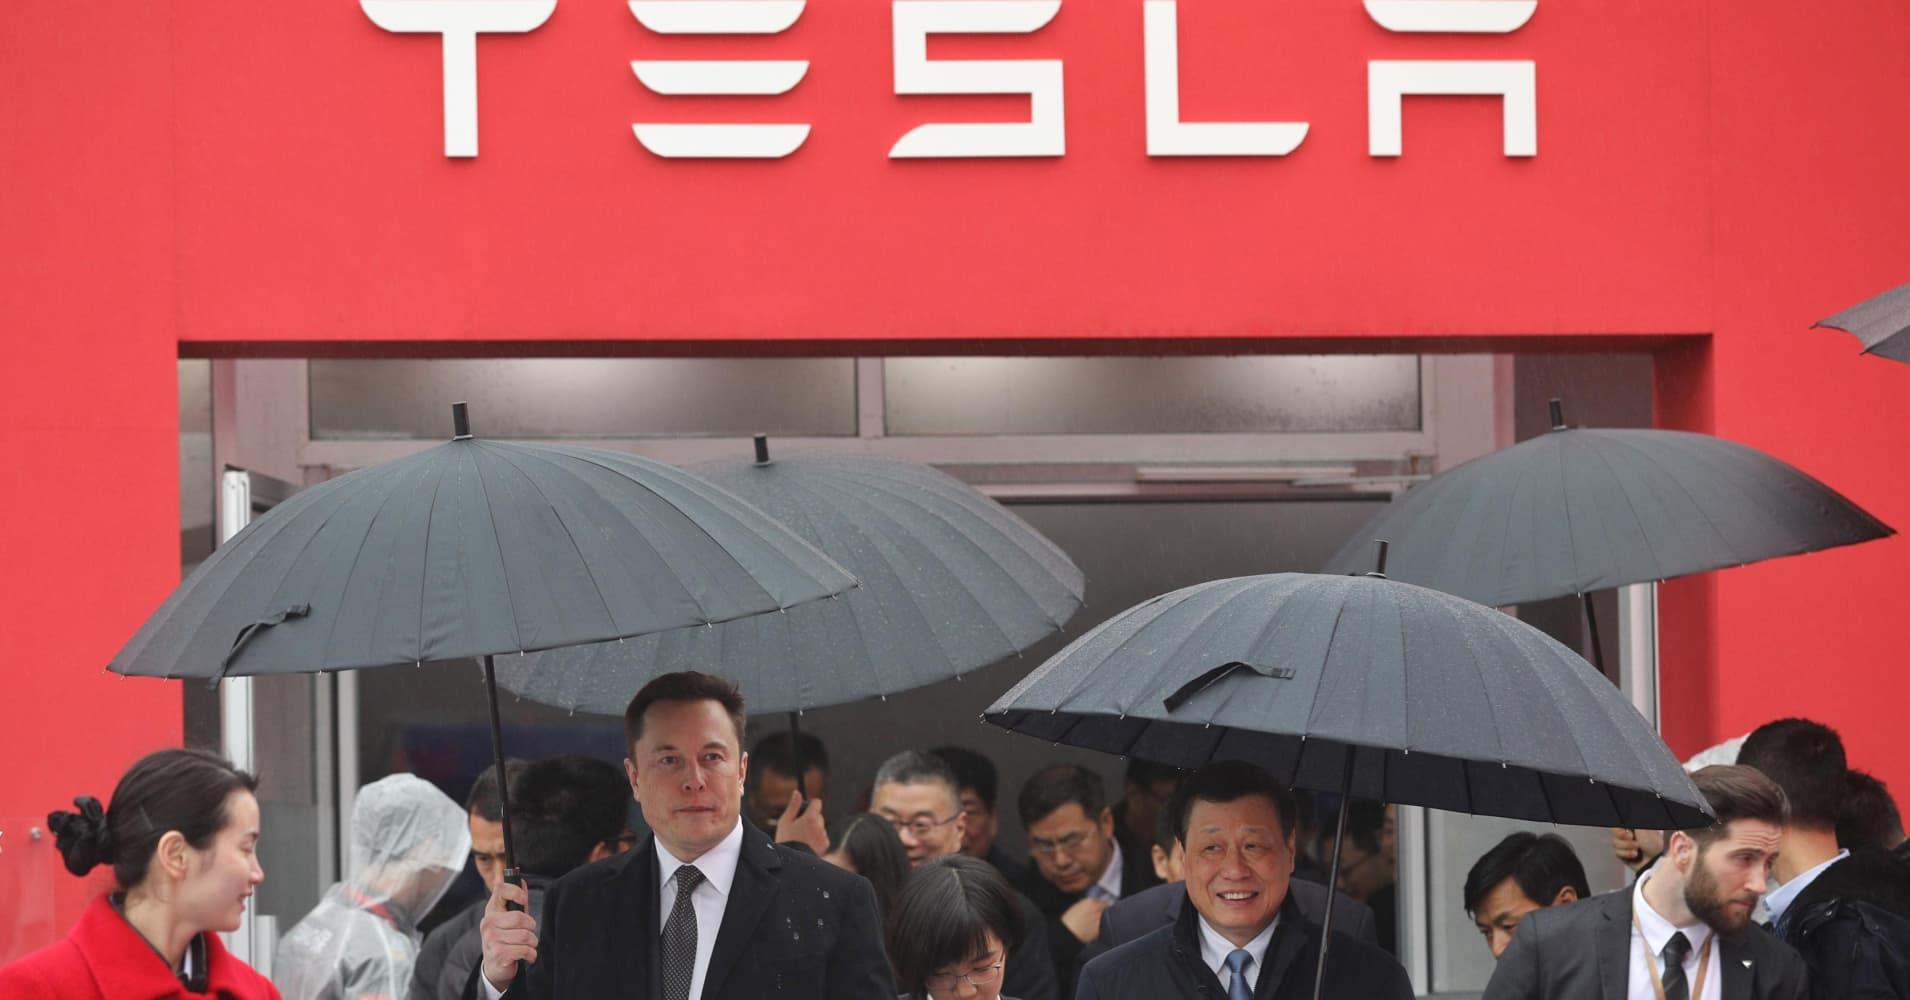 Tesla boss Elon Musk (L) walks with Shanghai Mayor Ying Yong during the ground-breaking ceremony for a Tesla factory in Shanghai on January 7, 2019. - Musk presided over the ground-breaking for a Shanghai factory that will allow the electric-car manufacturer to dodge the China-US tariff crossfire and sell directly to the world's biggest market for 'green' vehicles. (Photo by STR / AFP) / China OUT (Photo credit should read STR/AFP/Getty Images)